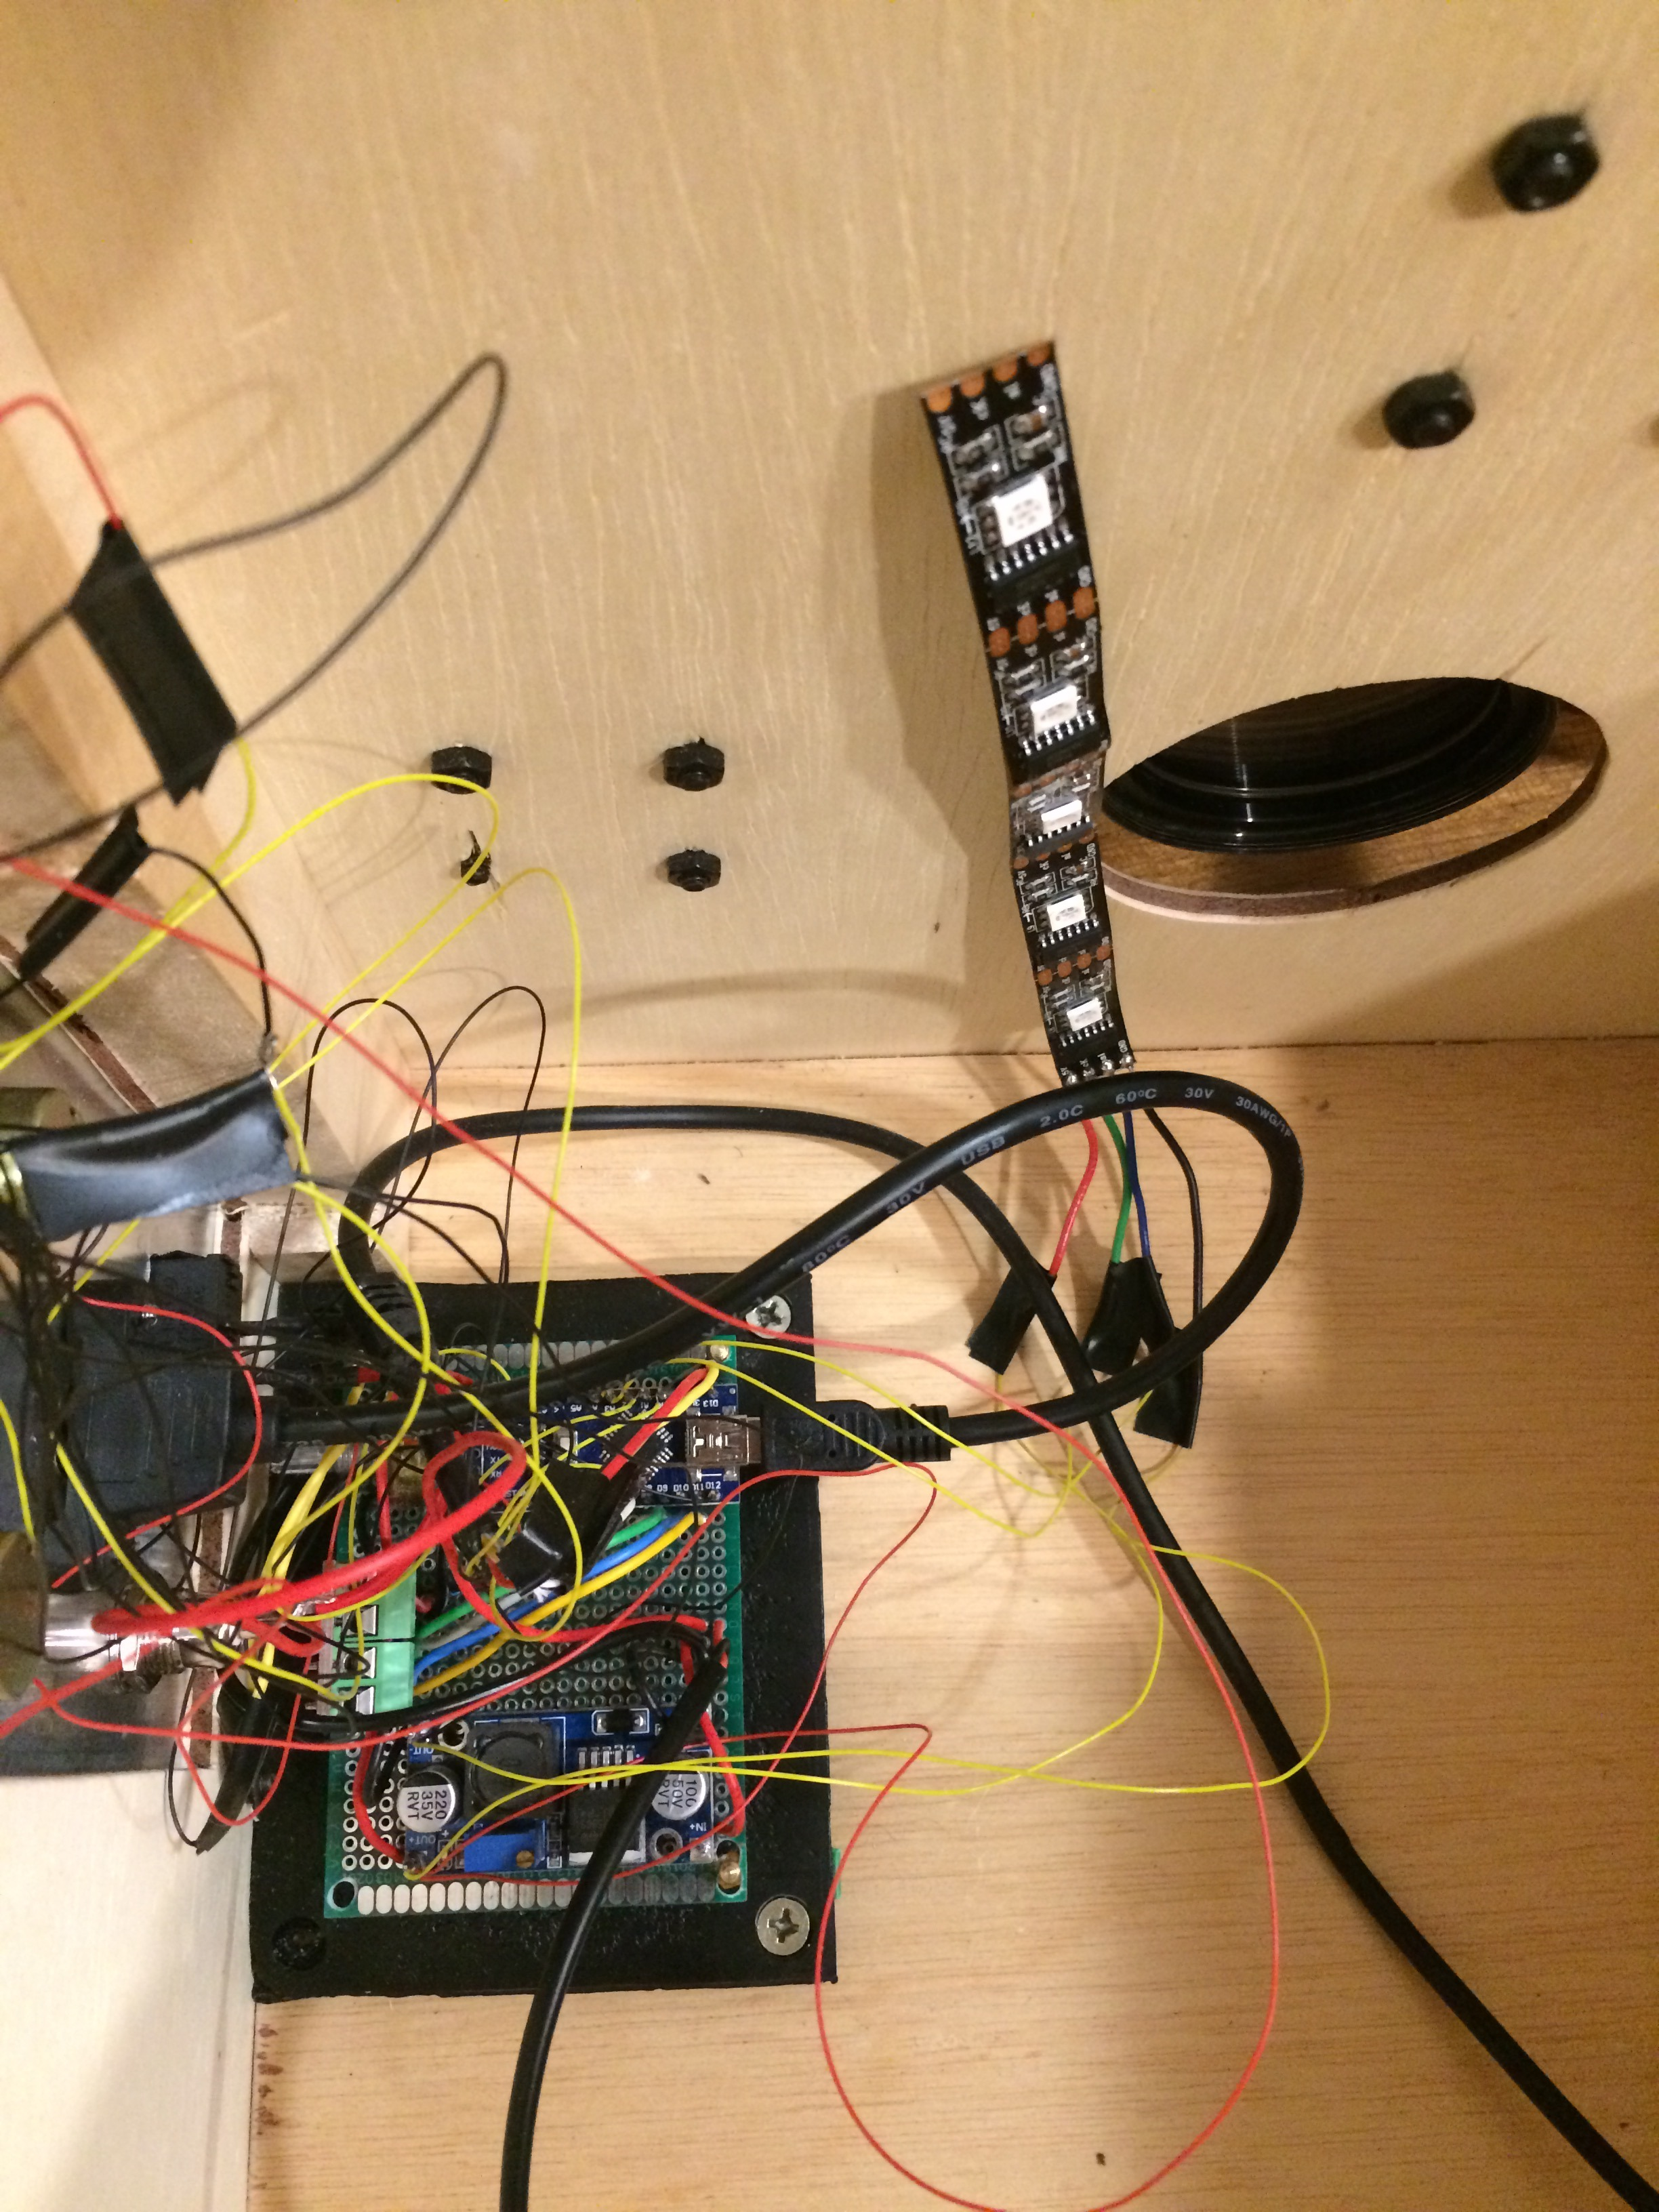 Picture of Mounting the Panel, Motor, and Addressable LEDs